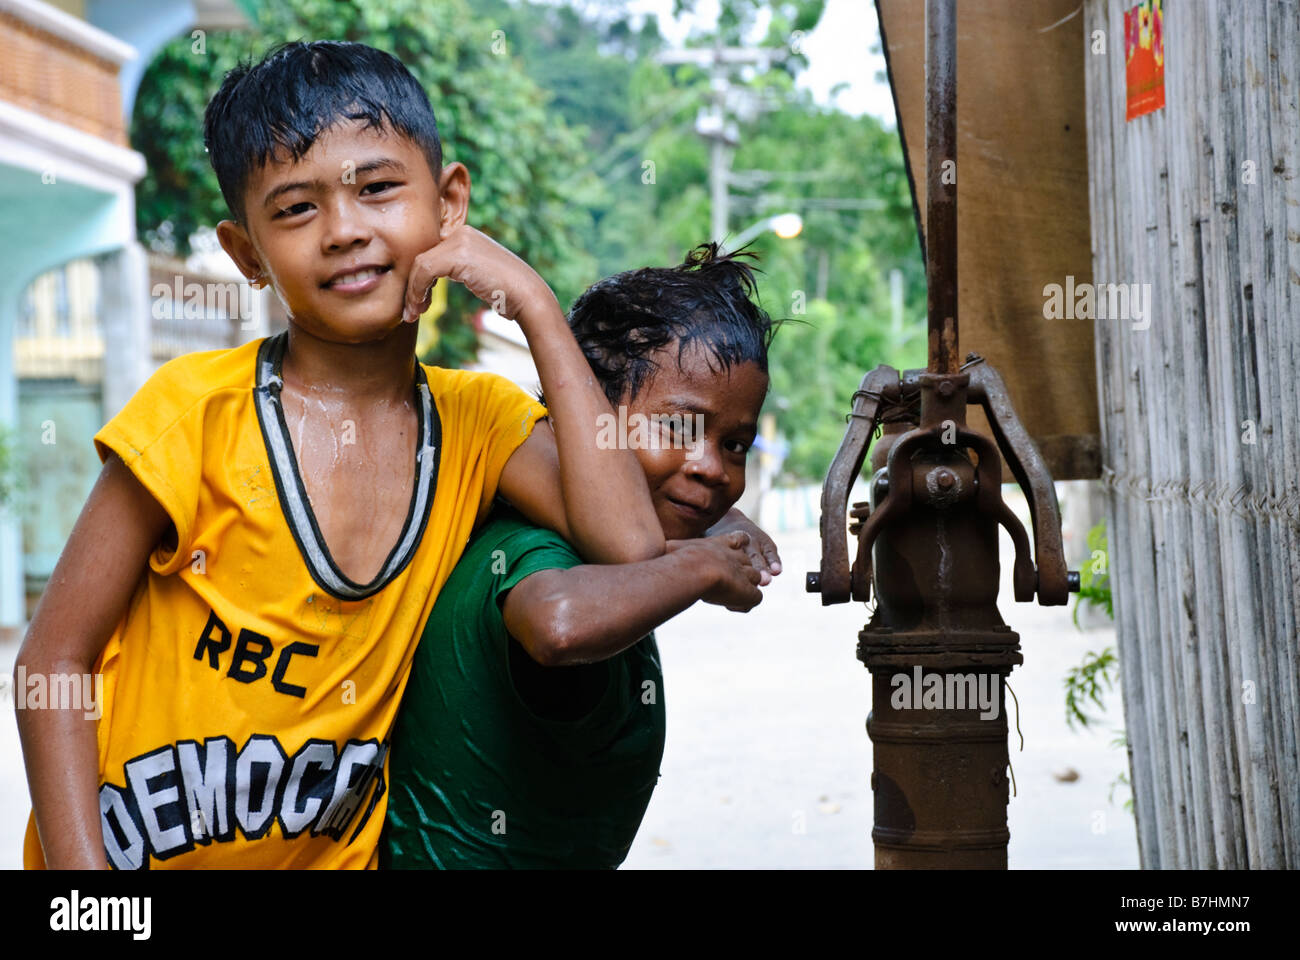 Two children pose for the camera, El Nido, Palawan, Philippines - Stock Image